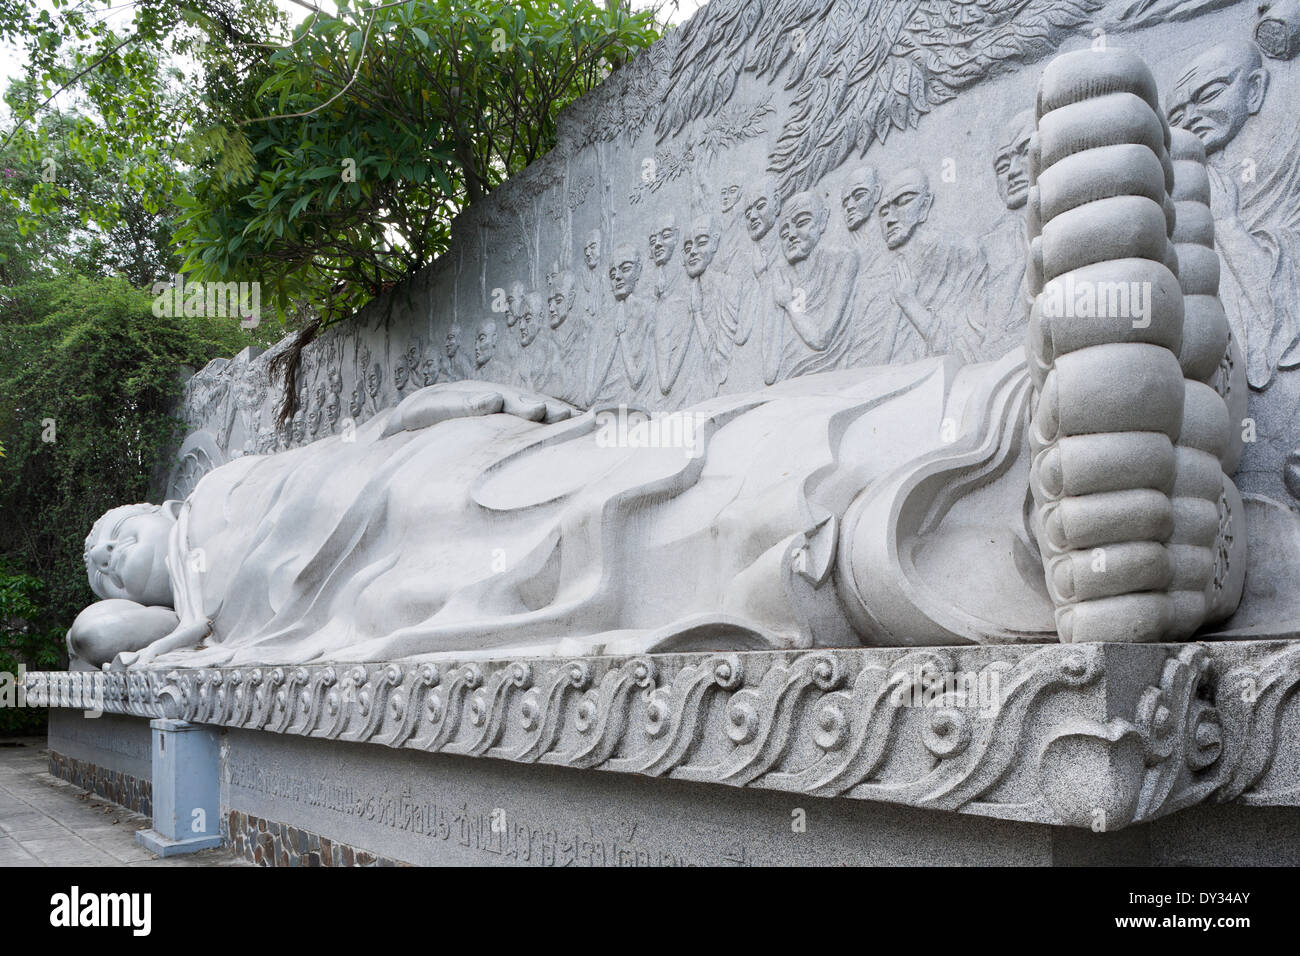 Nha Trang, Vietnam, Southeast Asia. Colossal statue of Reclining Buddha at Long Son Pagoda Stock Photo